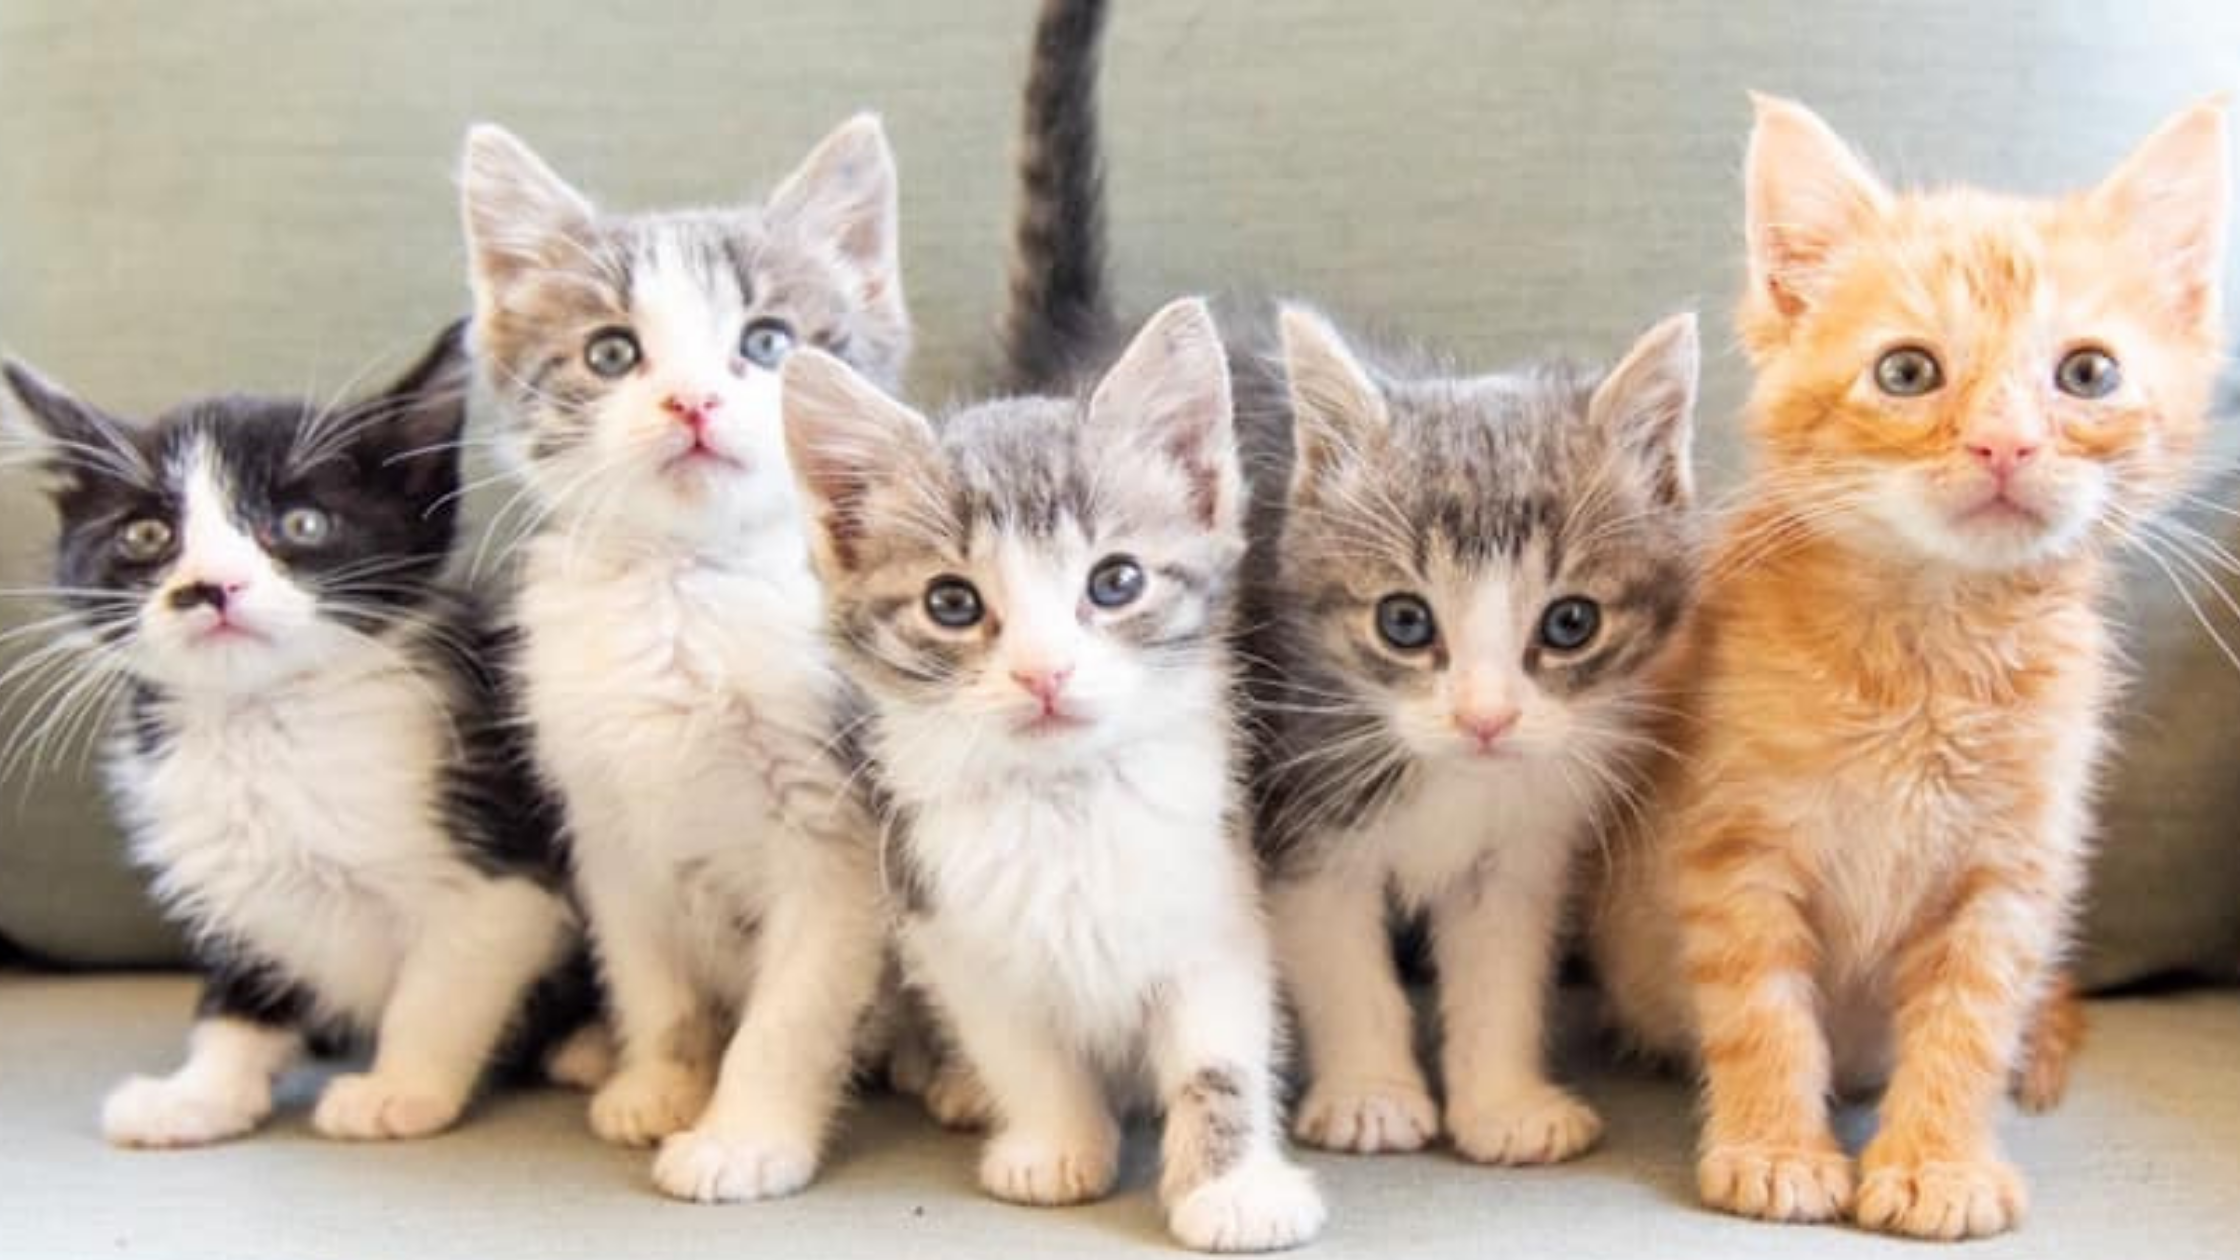 five kittens sitting on a couch